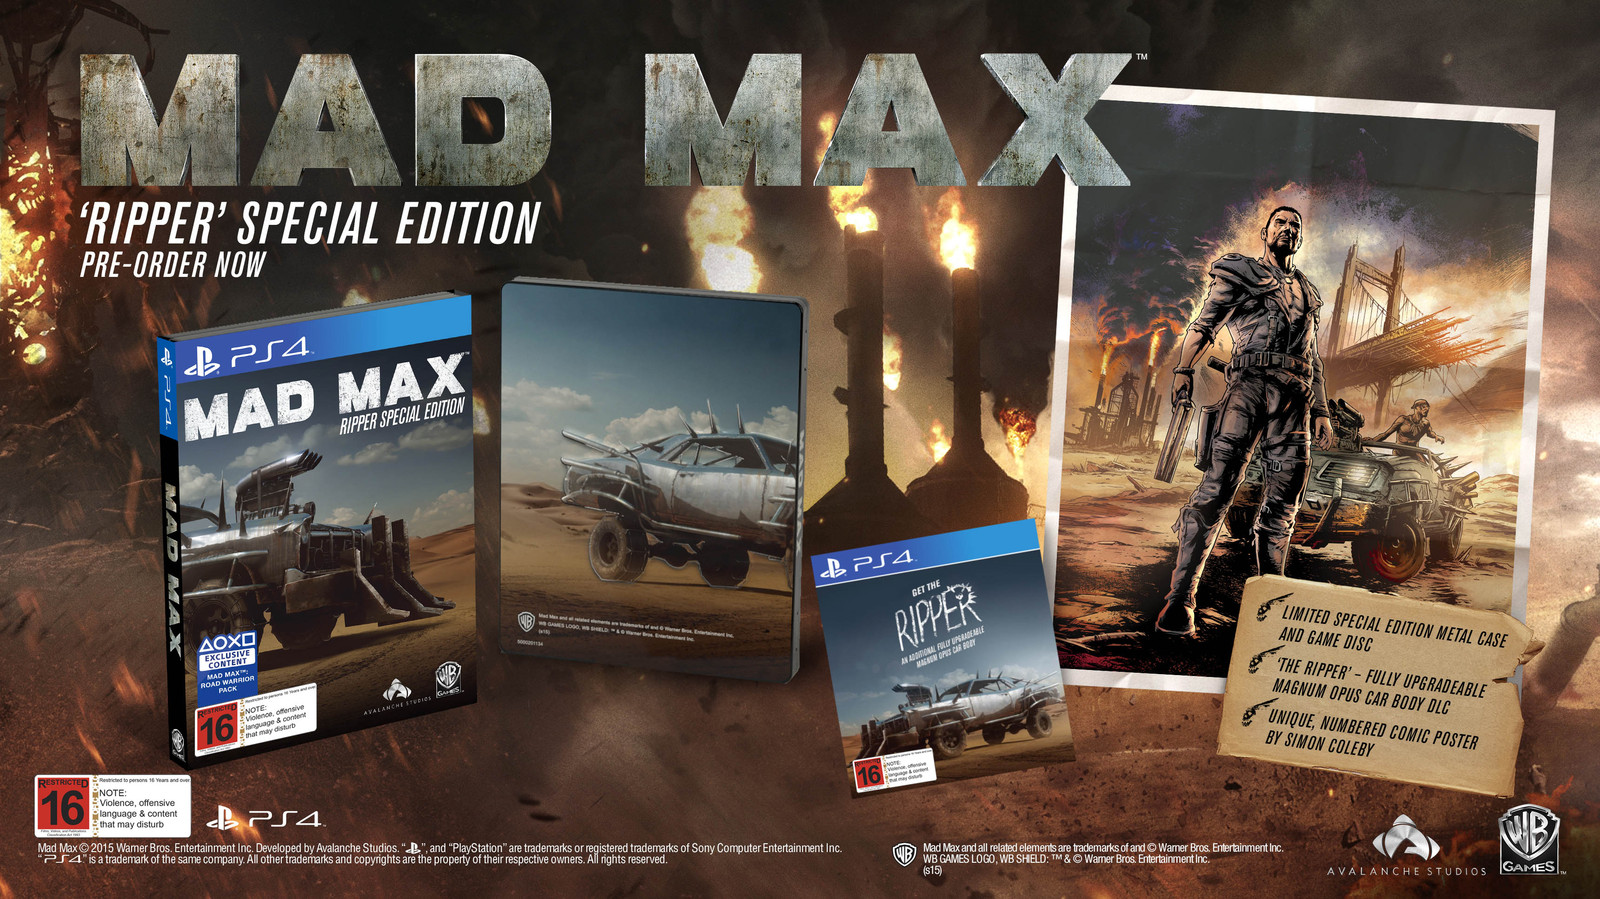 CollectorsEdition org » Mad Max Ripper Special Edition (PS4